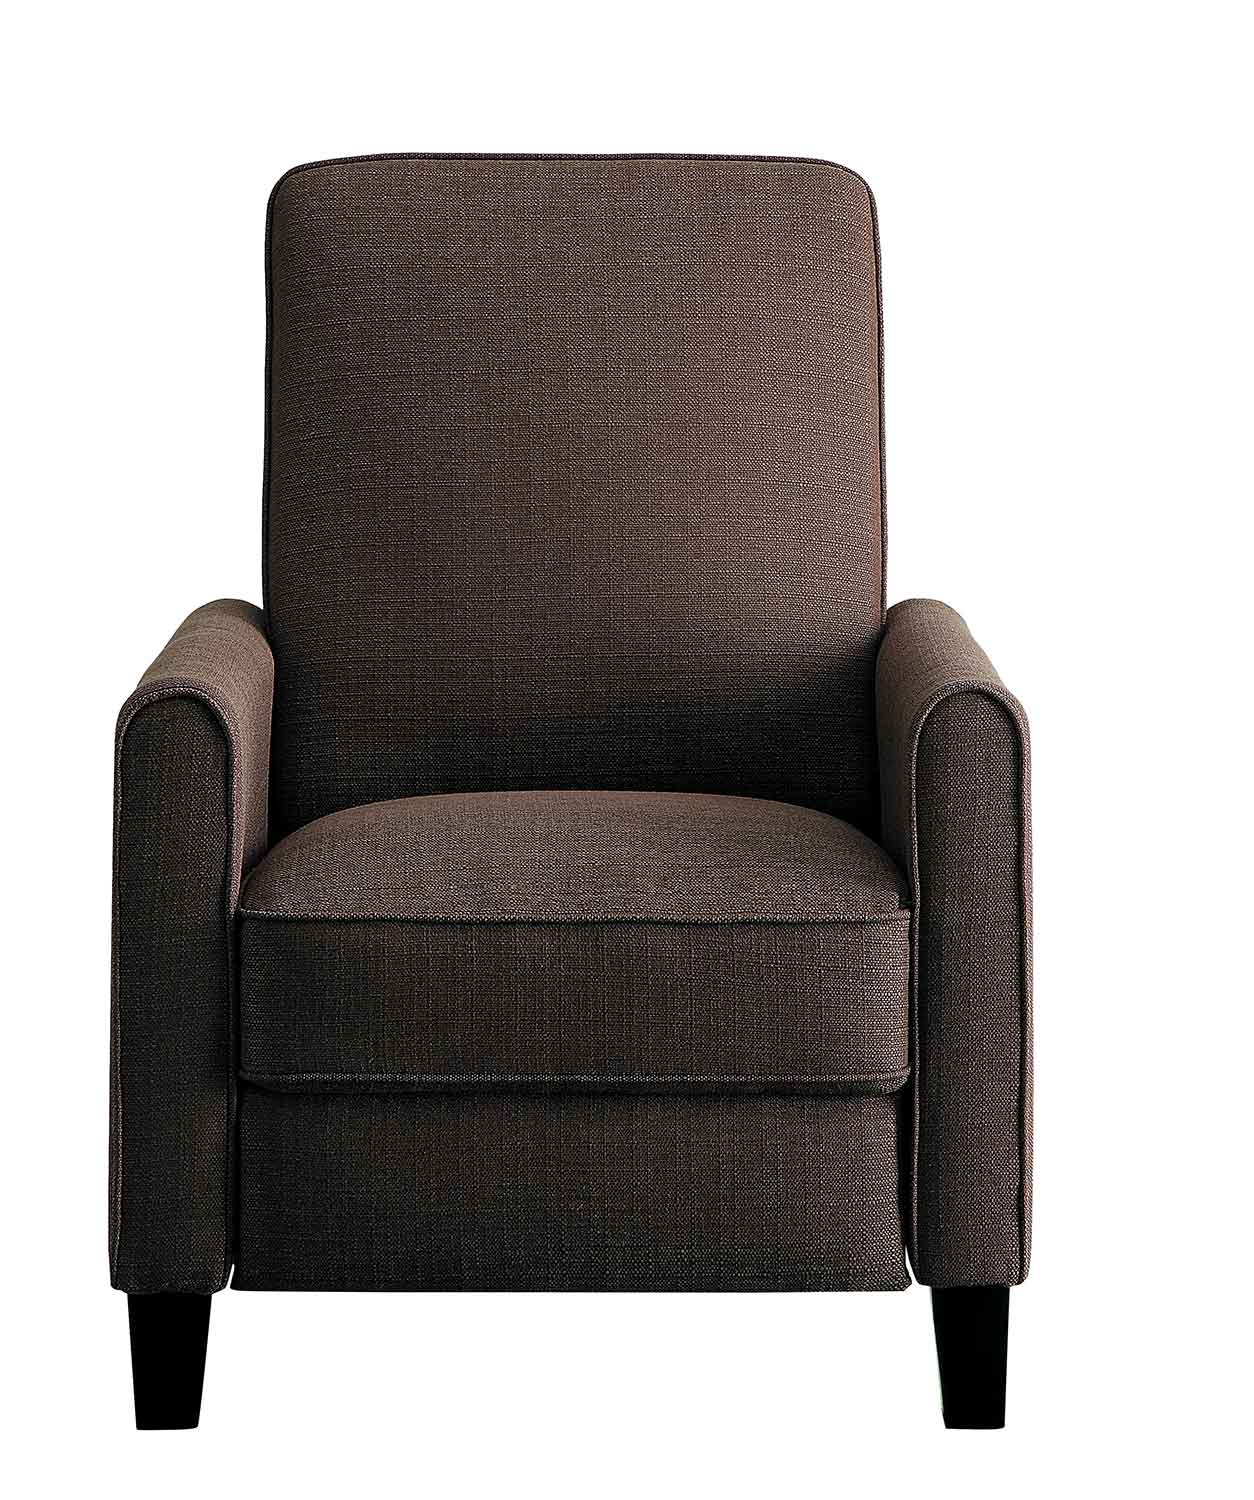 Homelegance Darcel Push Back Reclining Chair - Chocolate